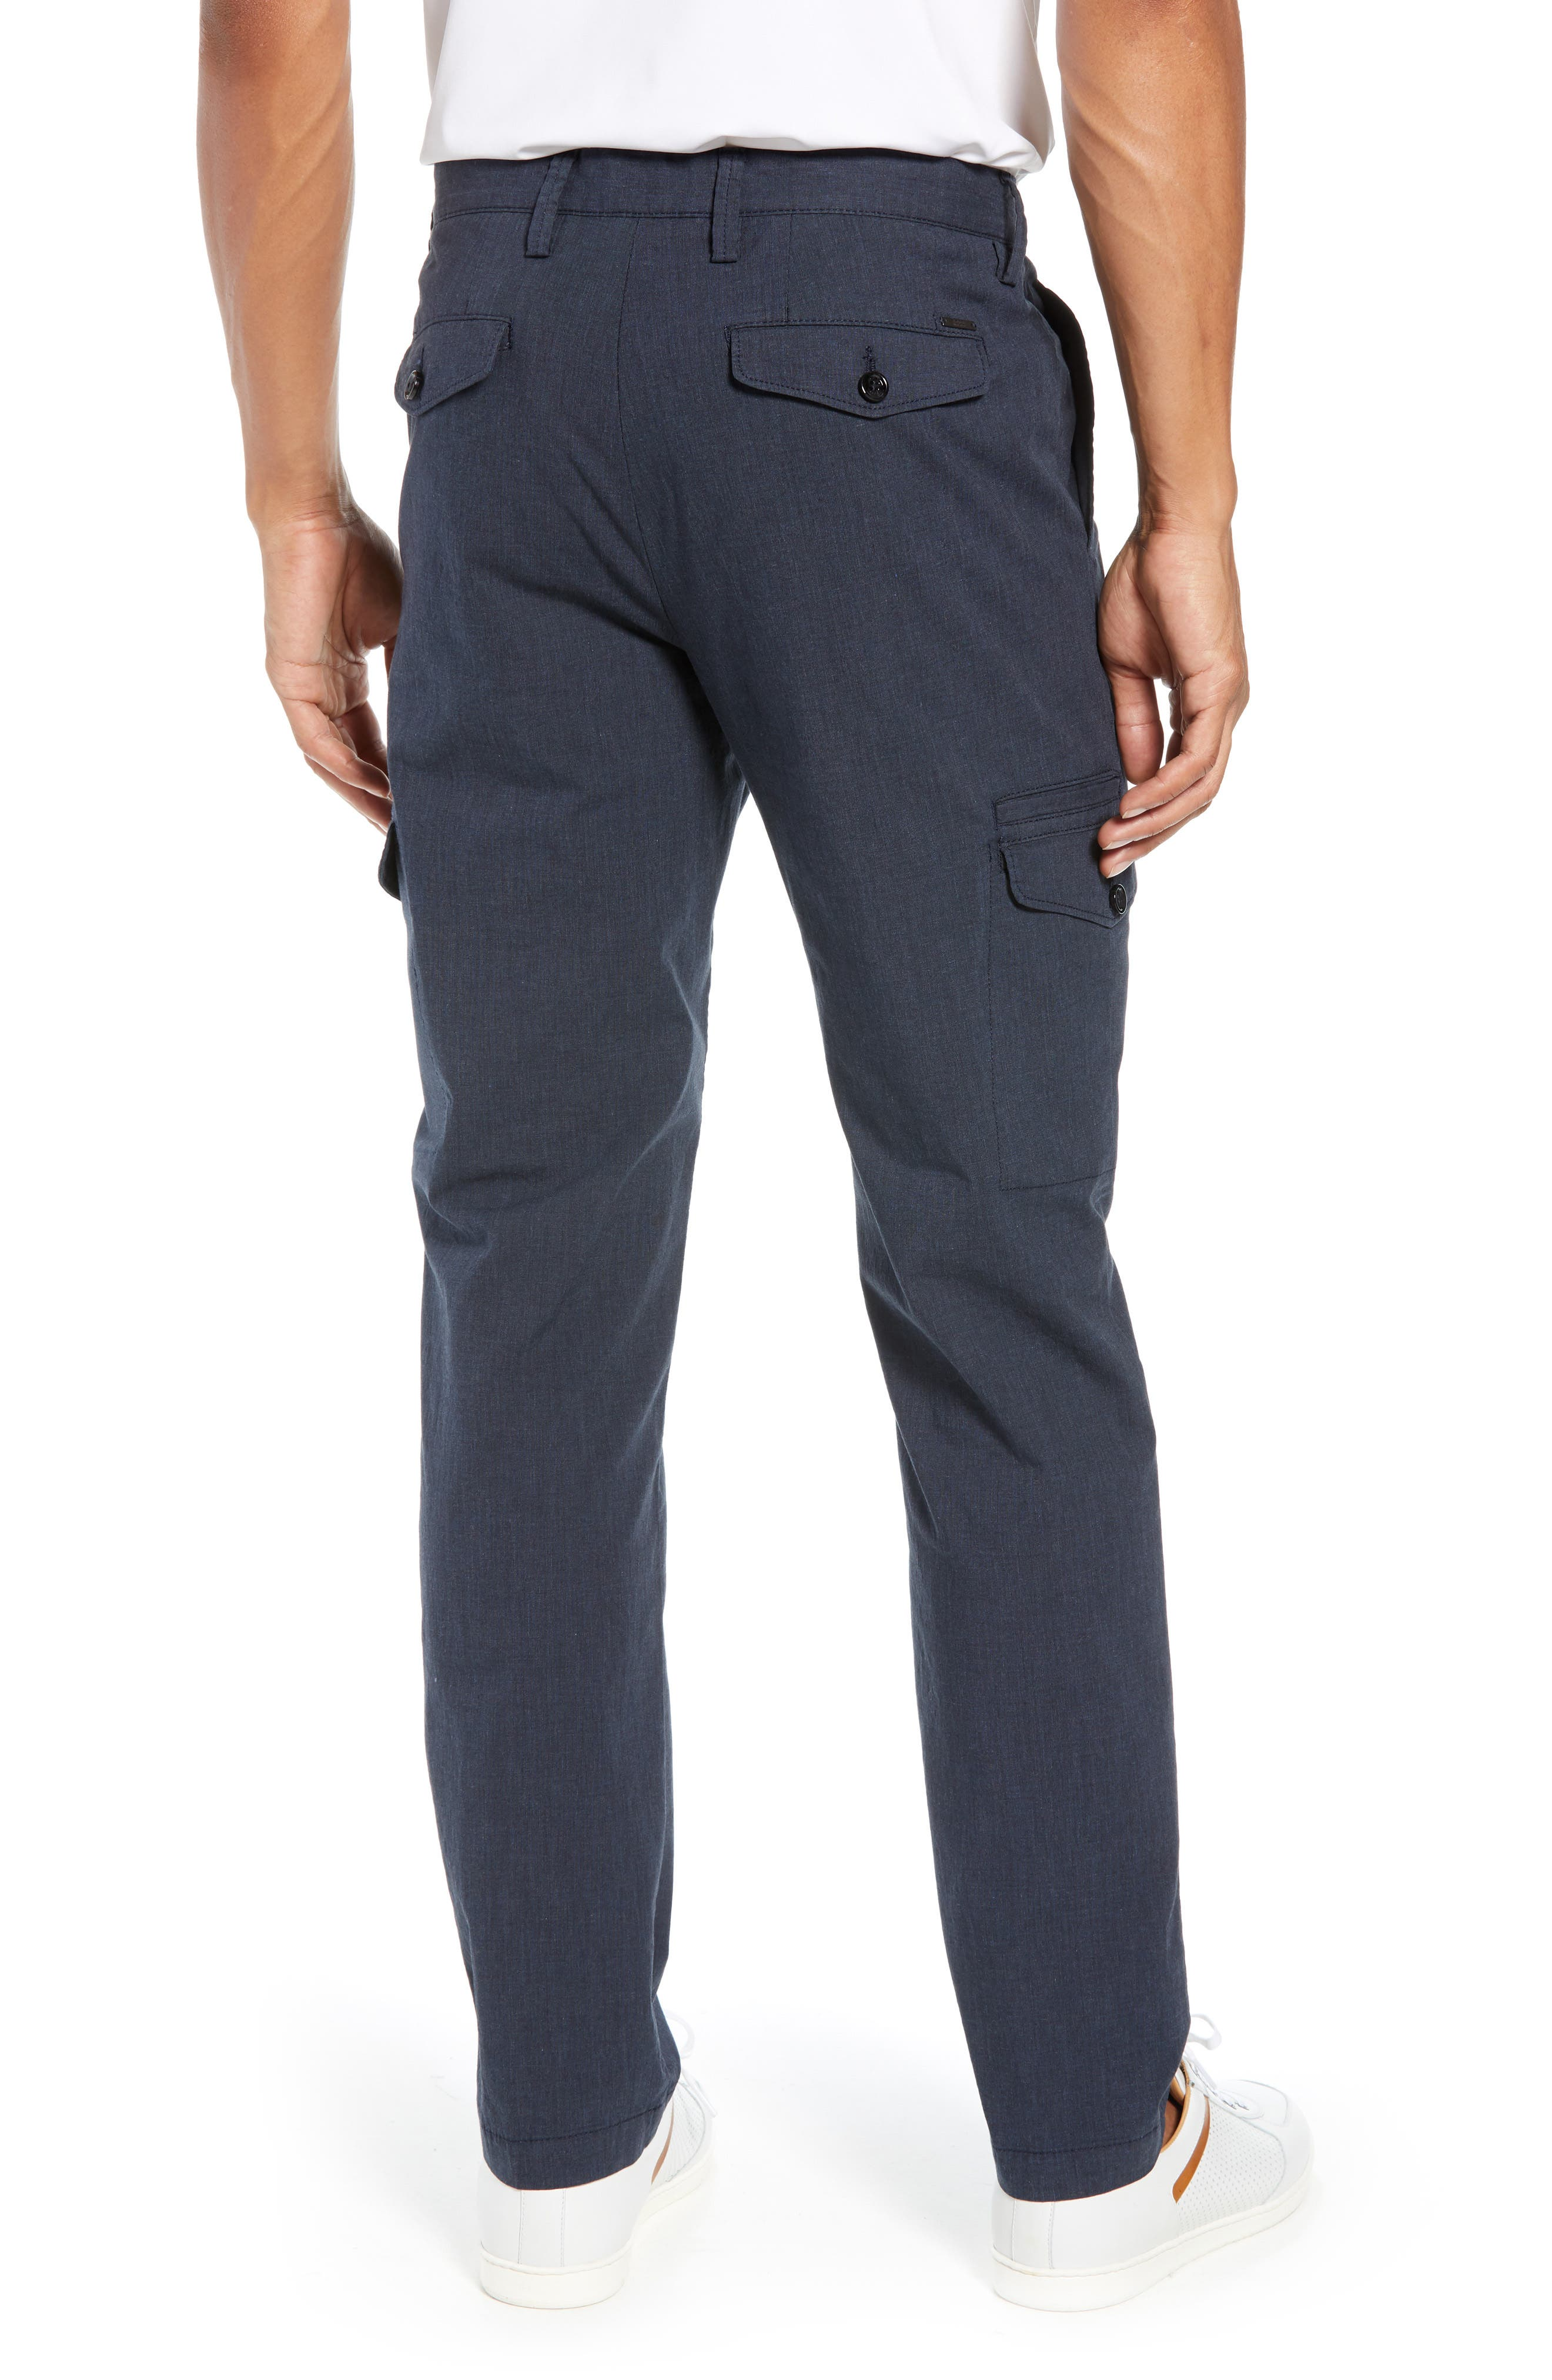 Kailo Slim Fit Cargo Pants,                             Alternate thumbnail 2, color,                             480